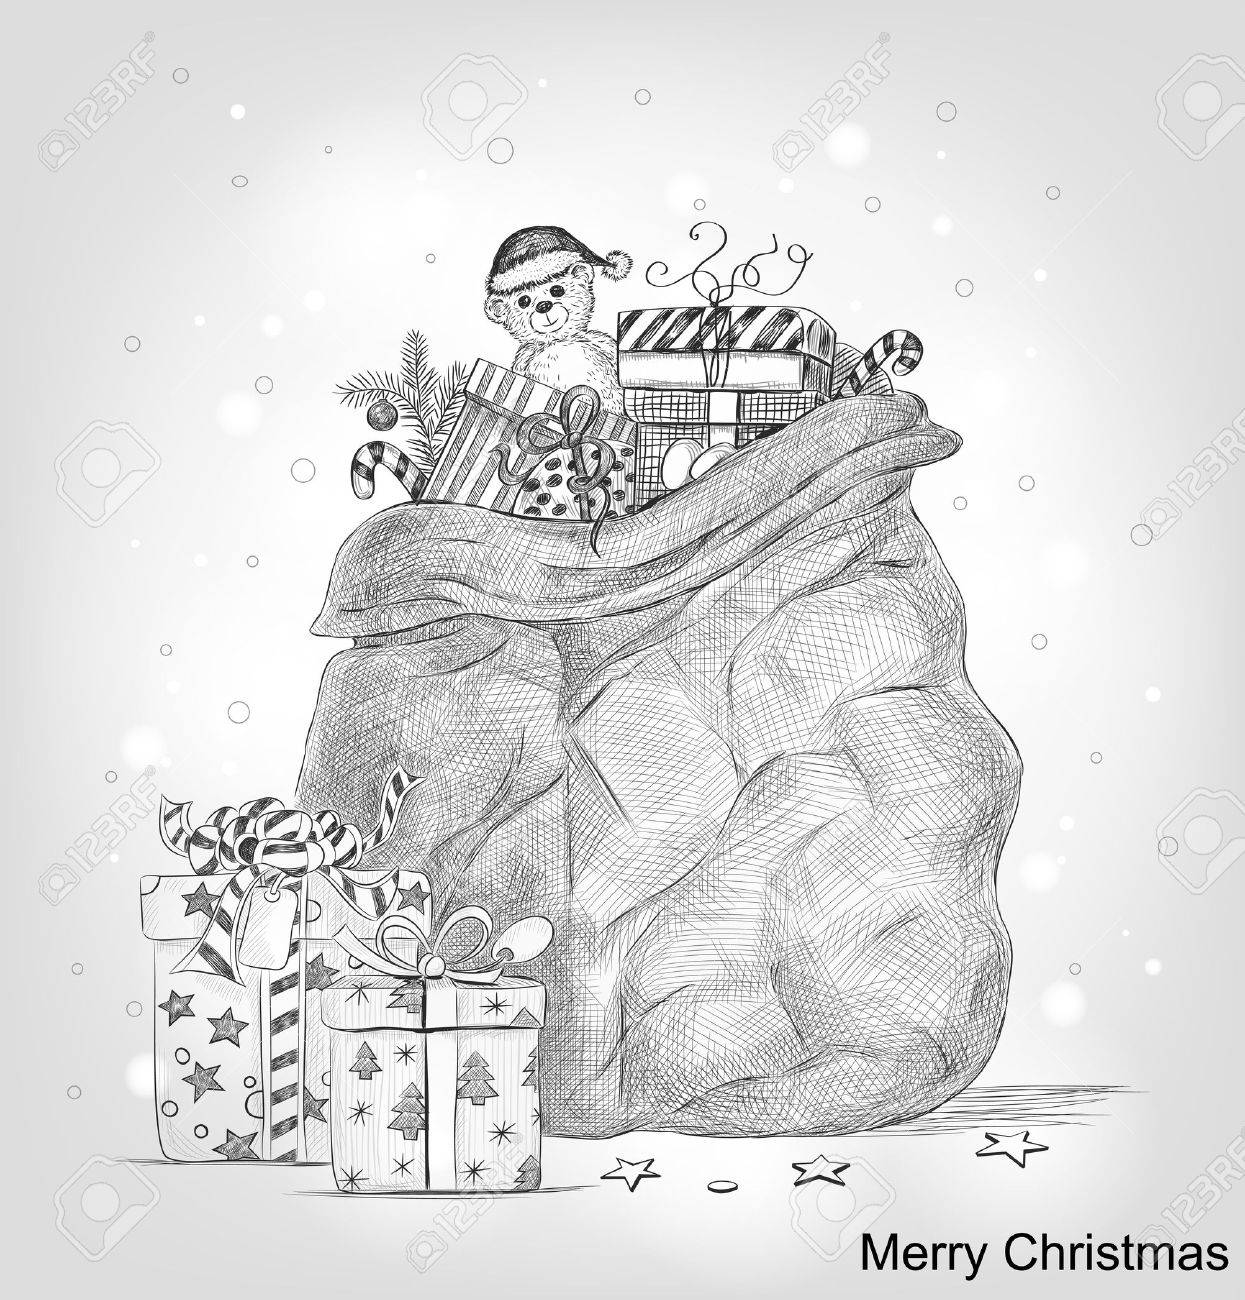 Hand drawn bag full of Christmas gifts Stock Vector - 11091076